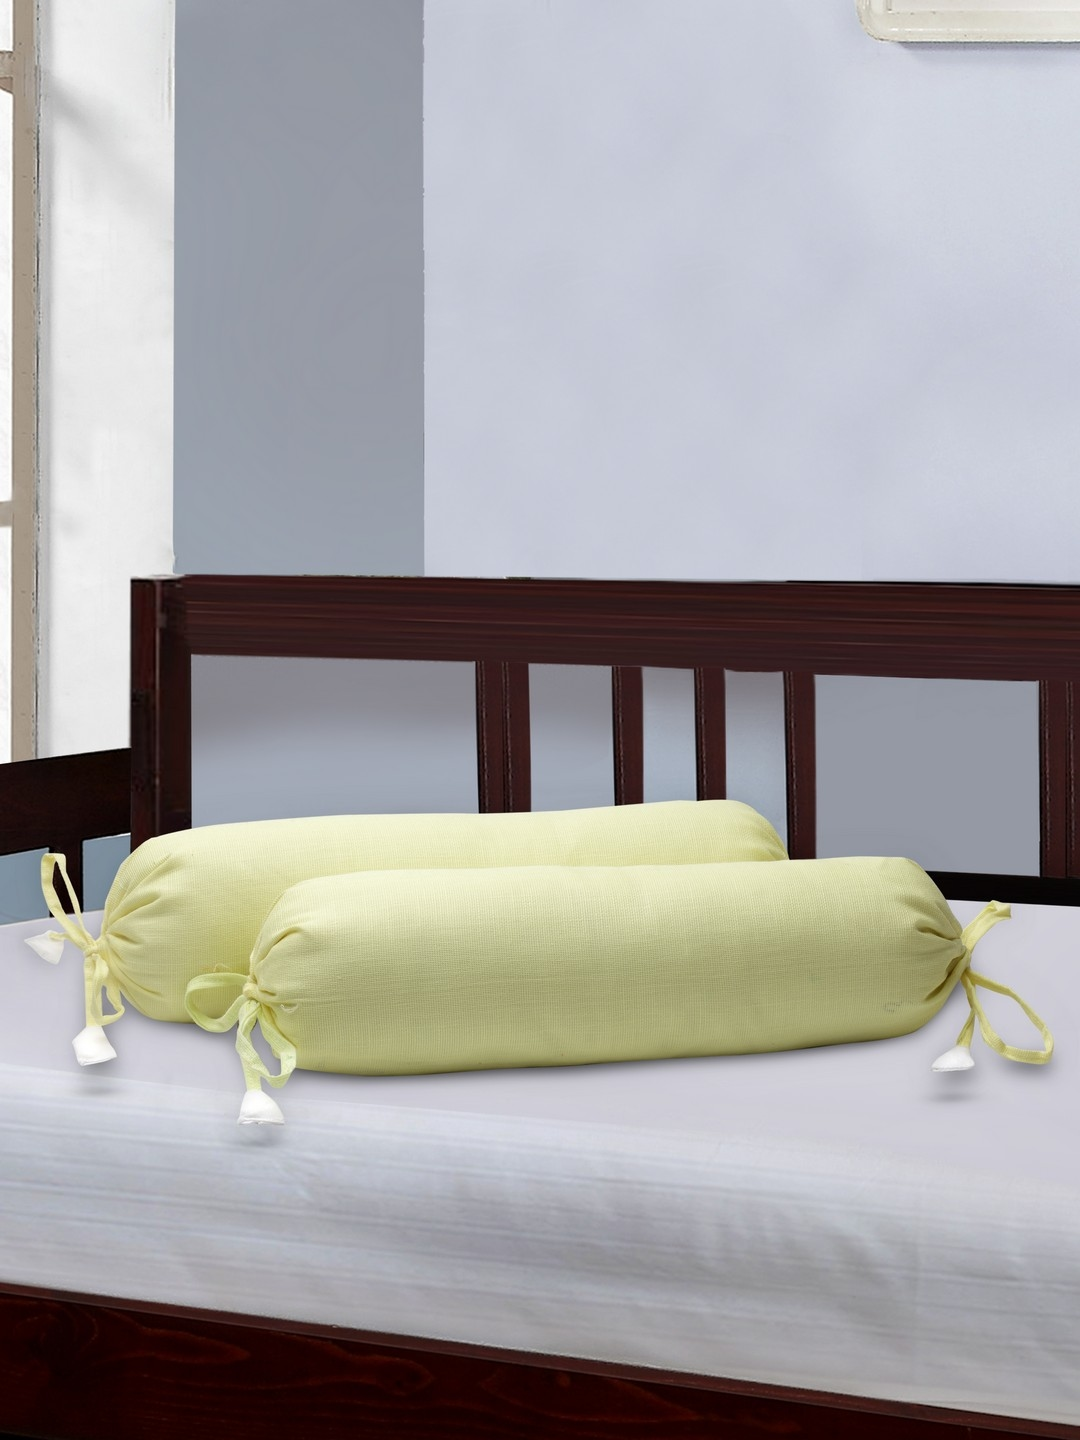 THE BABY ATELIER Kids Set of 2 Yellow 39.4 cm x 21.8 cm Cylindrical Bolster Covers